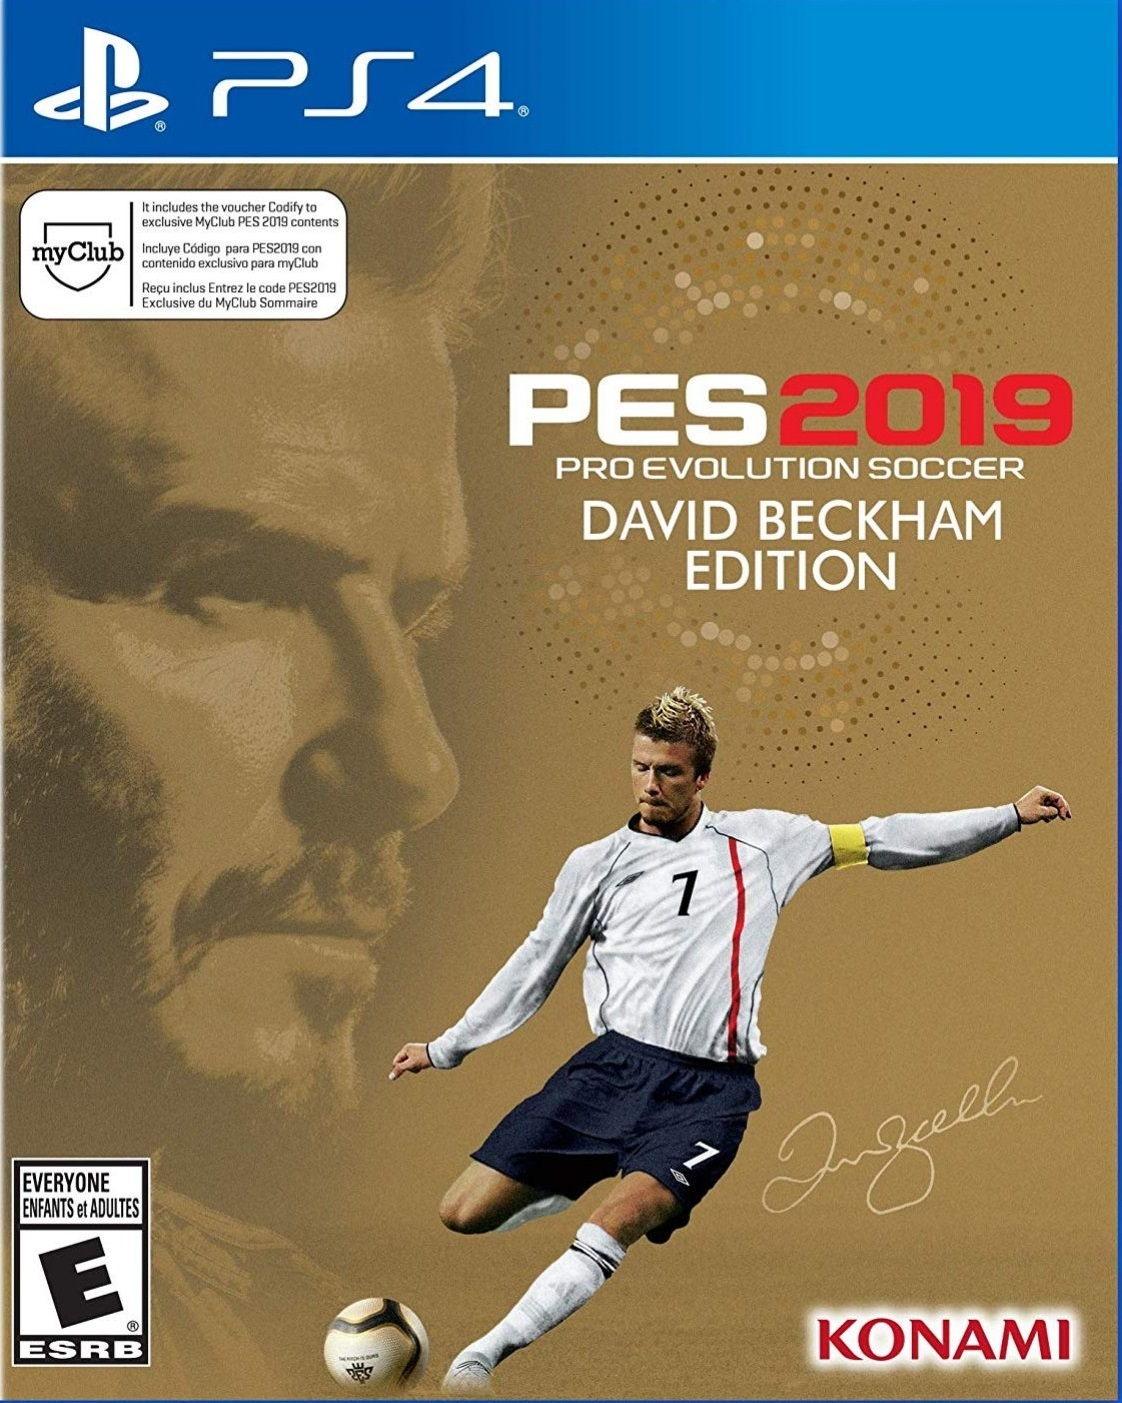 pro-evolution-soccer-2019-david-beckham-edition-563015.18.jpg